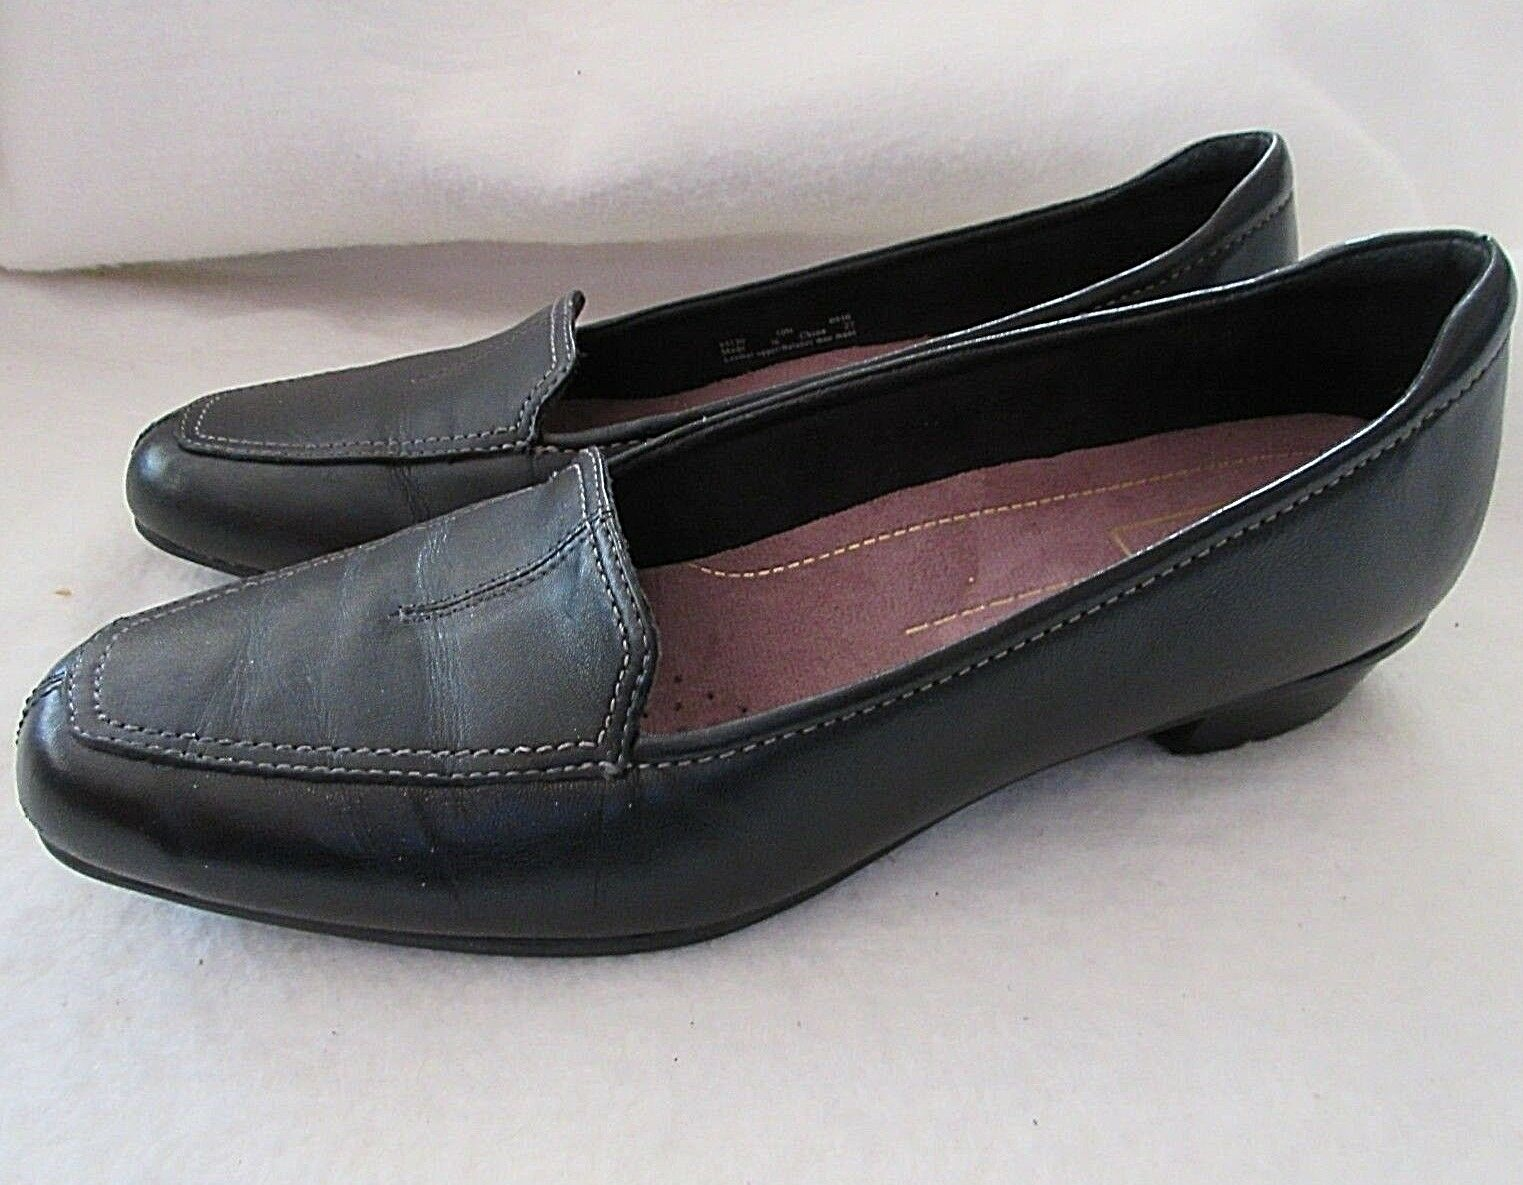 CLARKS Everyday Timeless  Women's 10 N (NARROW) Black Leather Loafers shoes